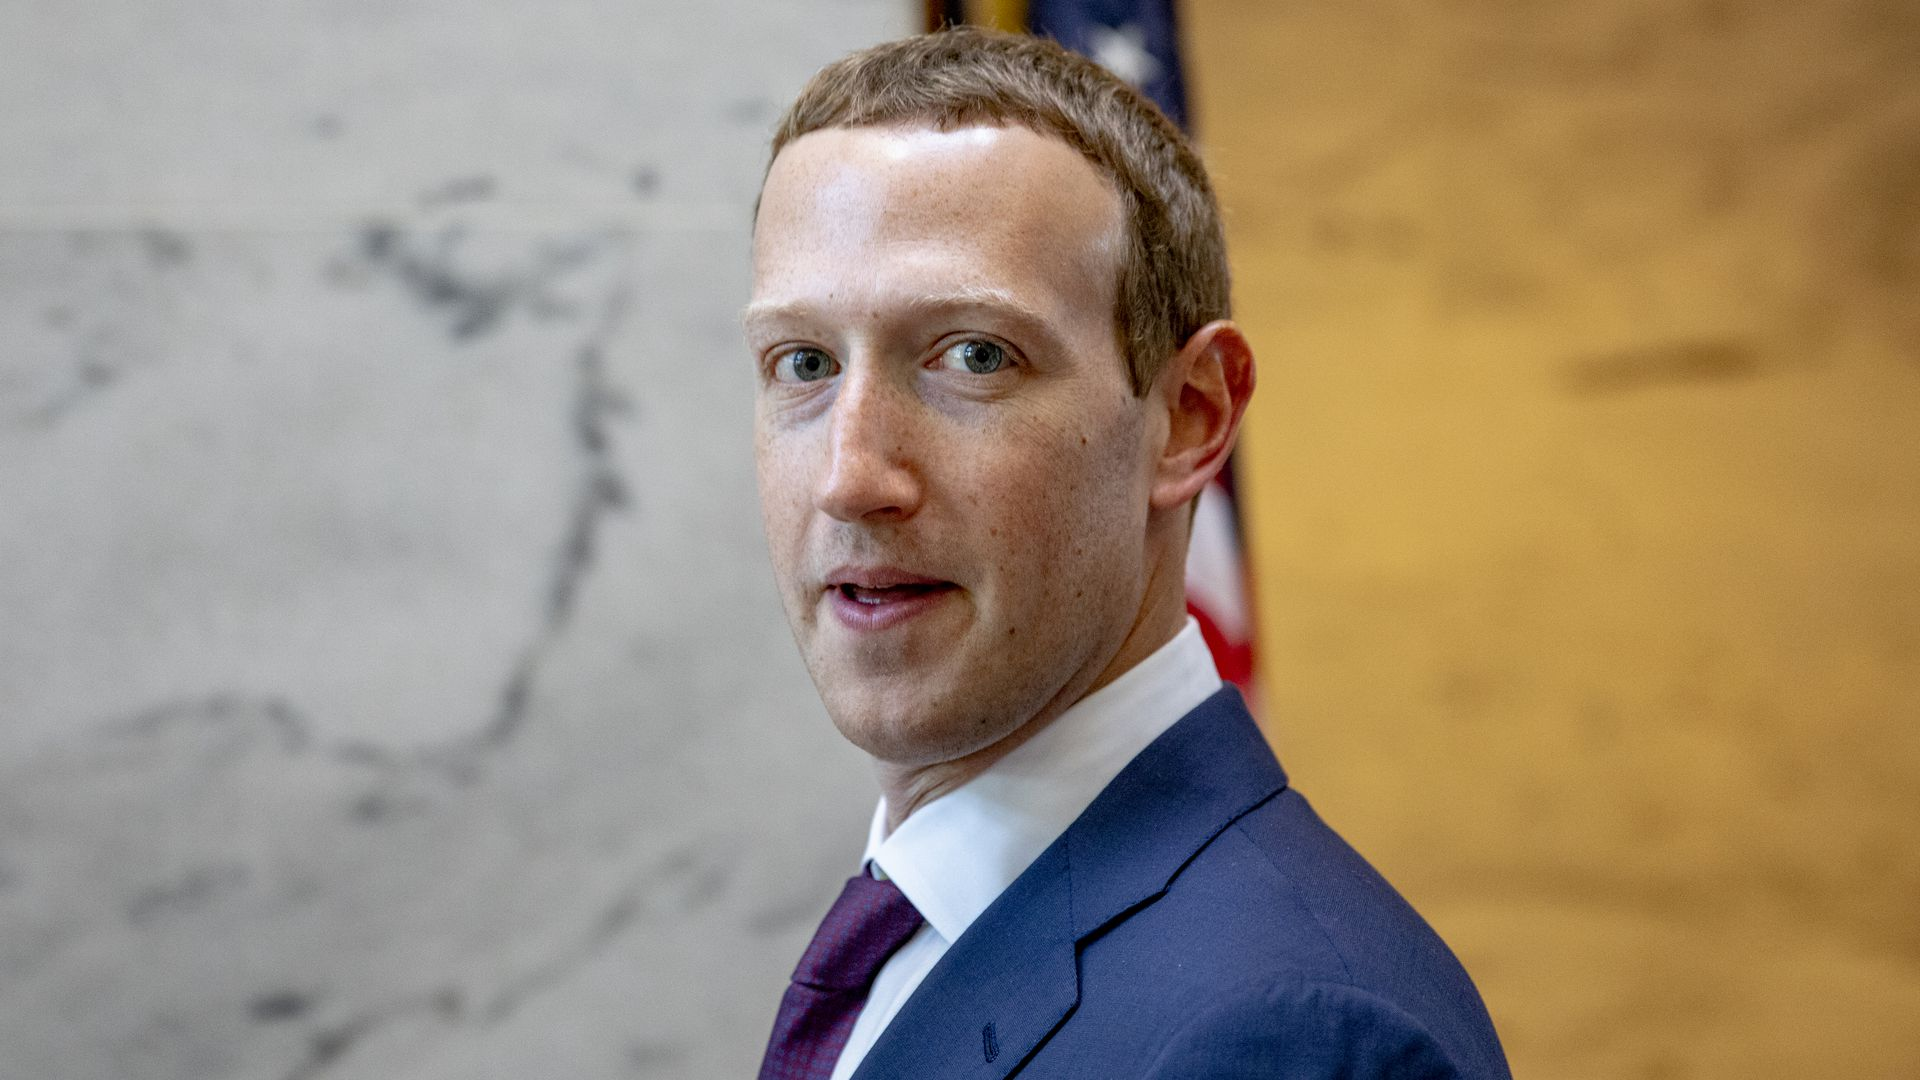 In this image, Zuckerberg's profile is turned away from the camera as he faces it head-on. He's wearing a suit